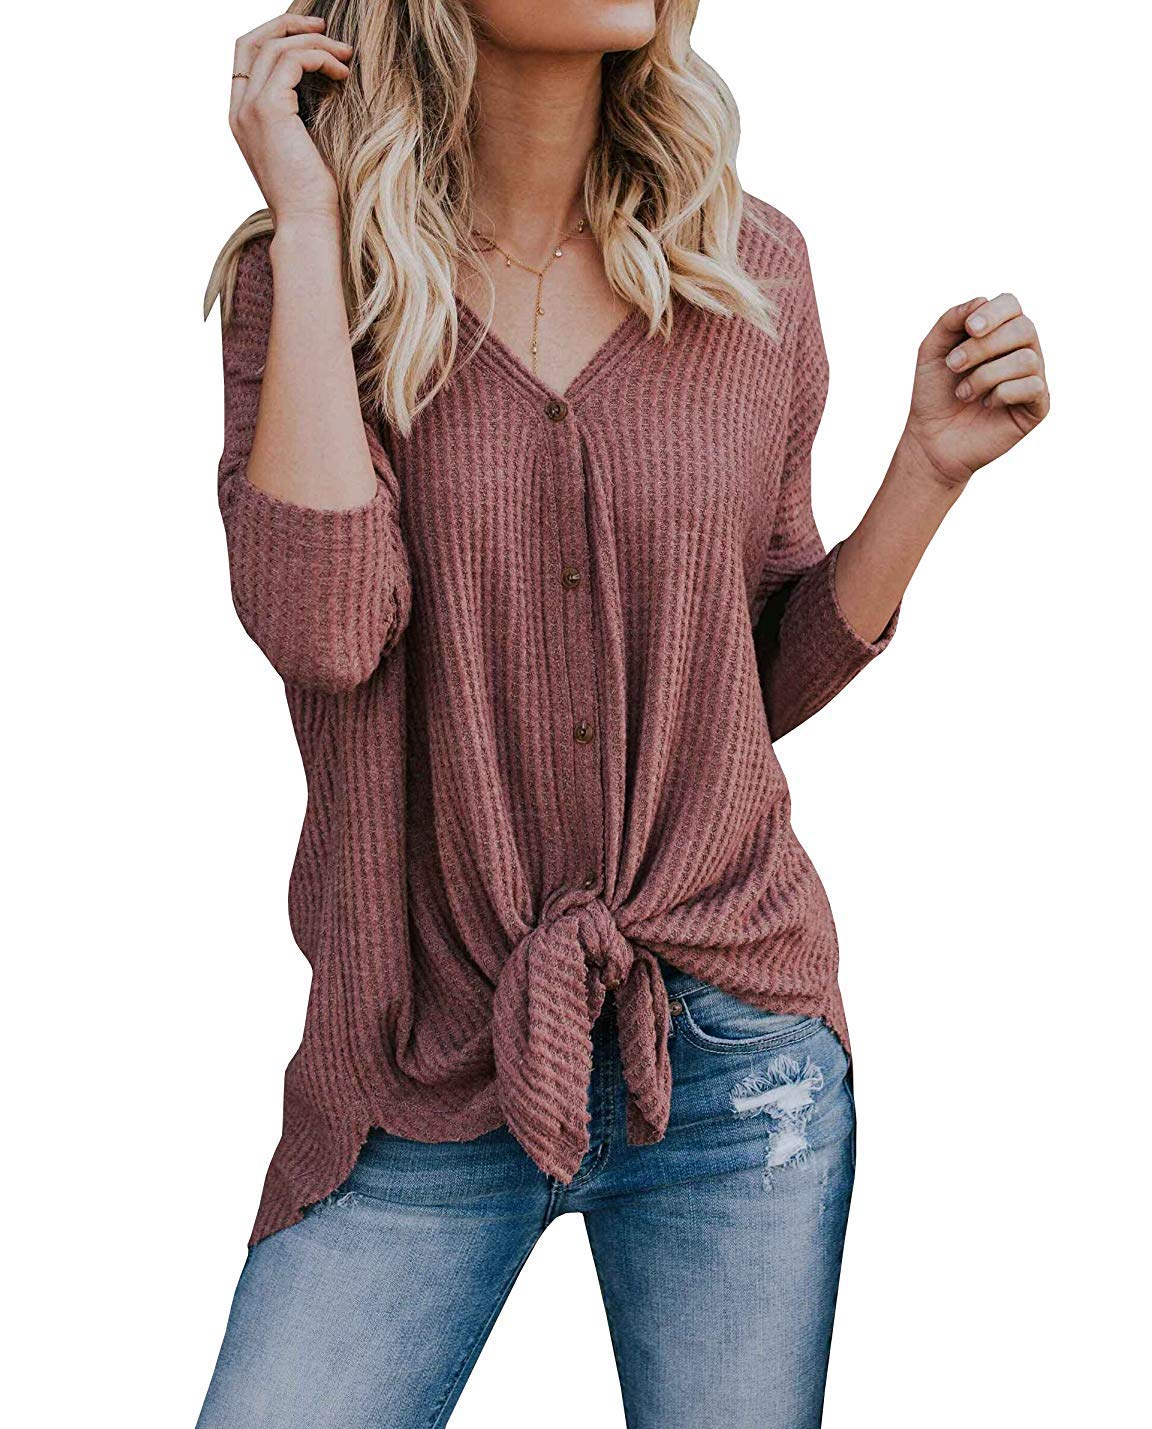 Maxjeef Long Sleeve Loose Fit Tops Ribbed Knit Tie Knot V Neck Button Front Shirts (Rust Red, XX-Large)